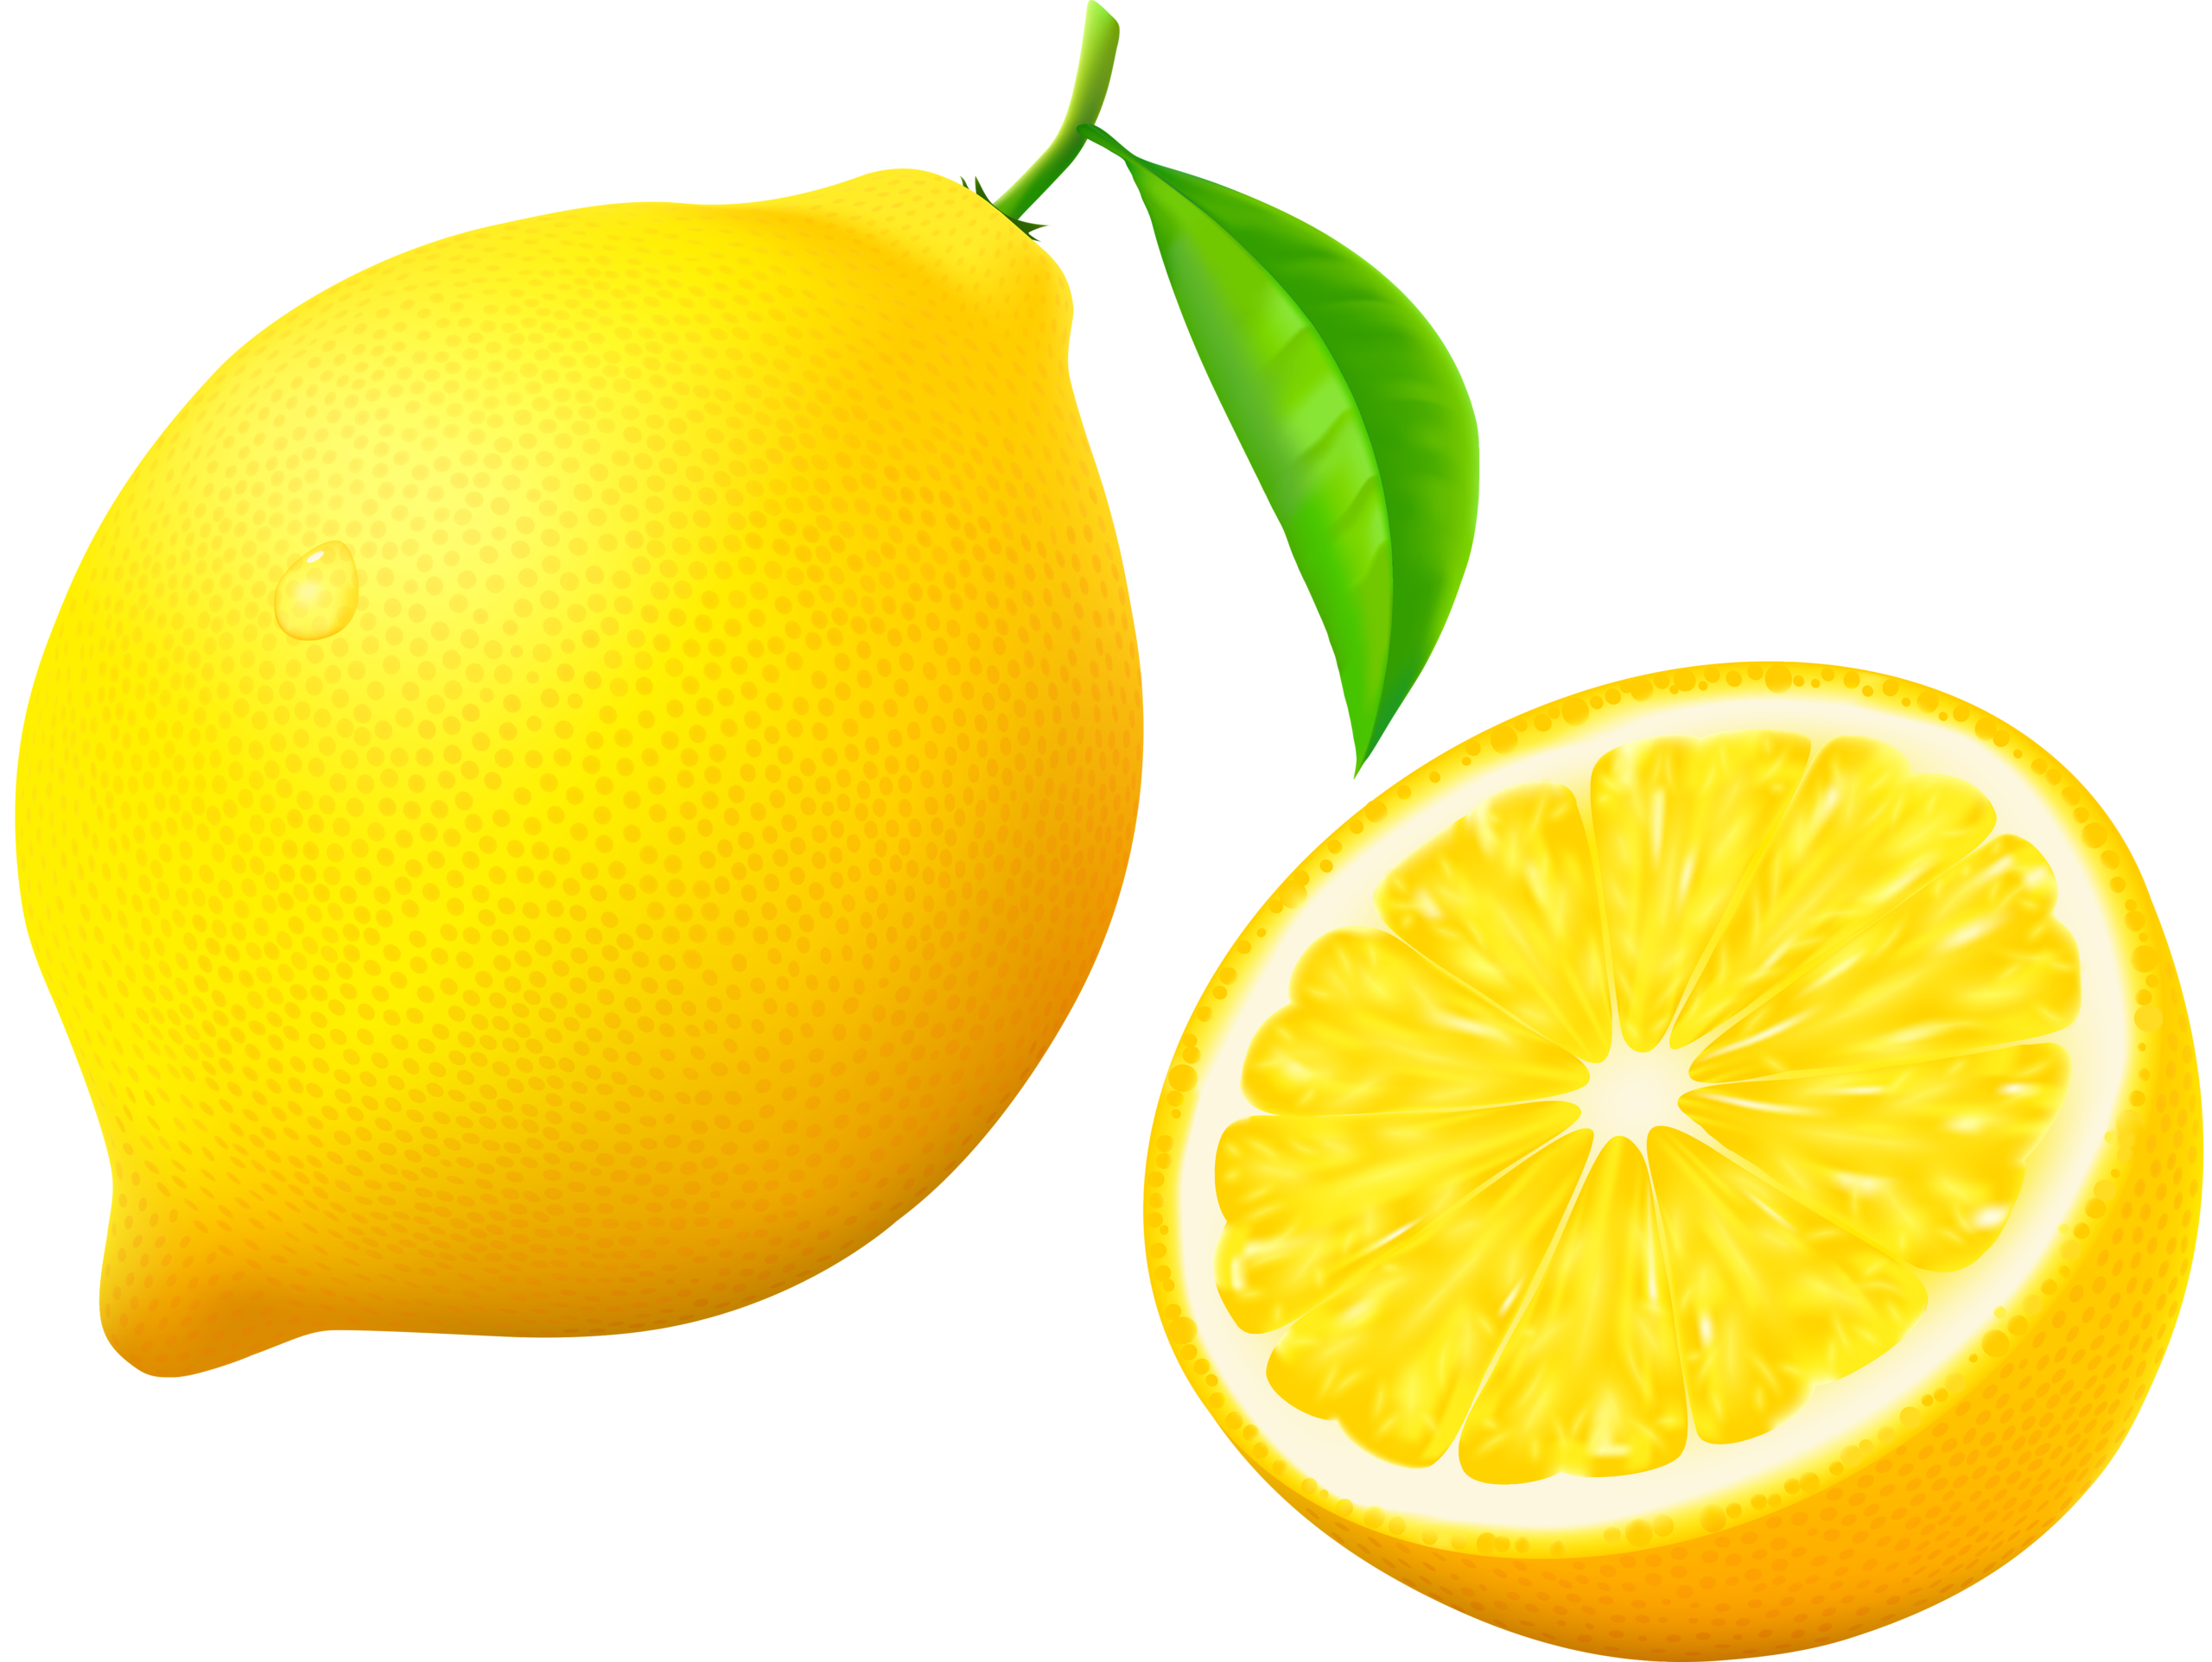 Lemonade clipart lemon soda. With half and flower